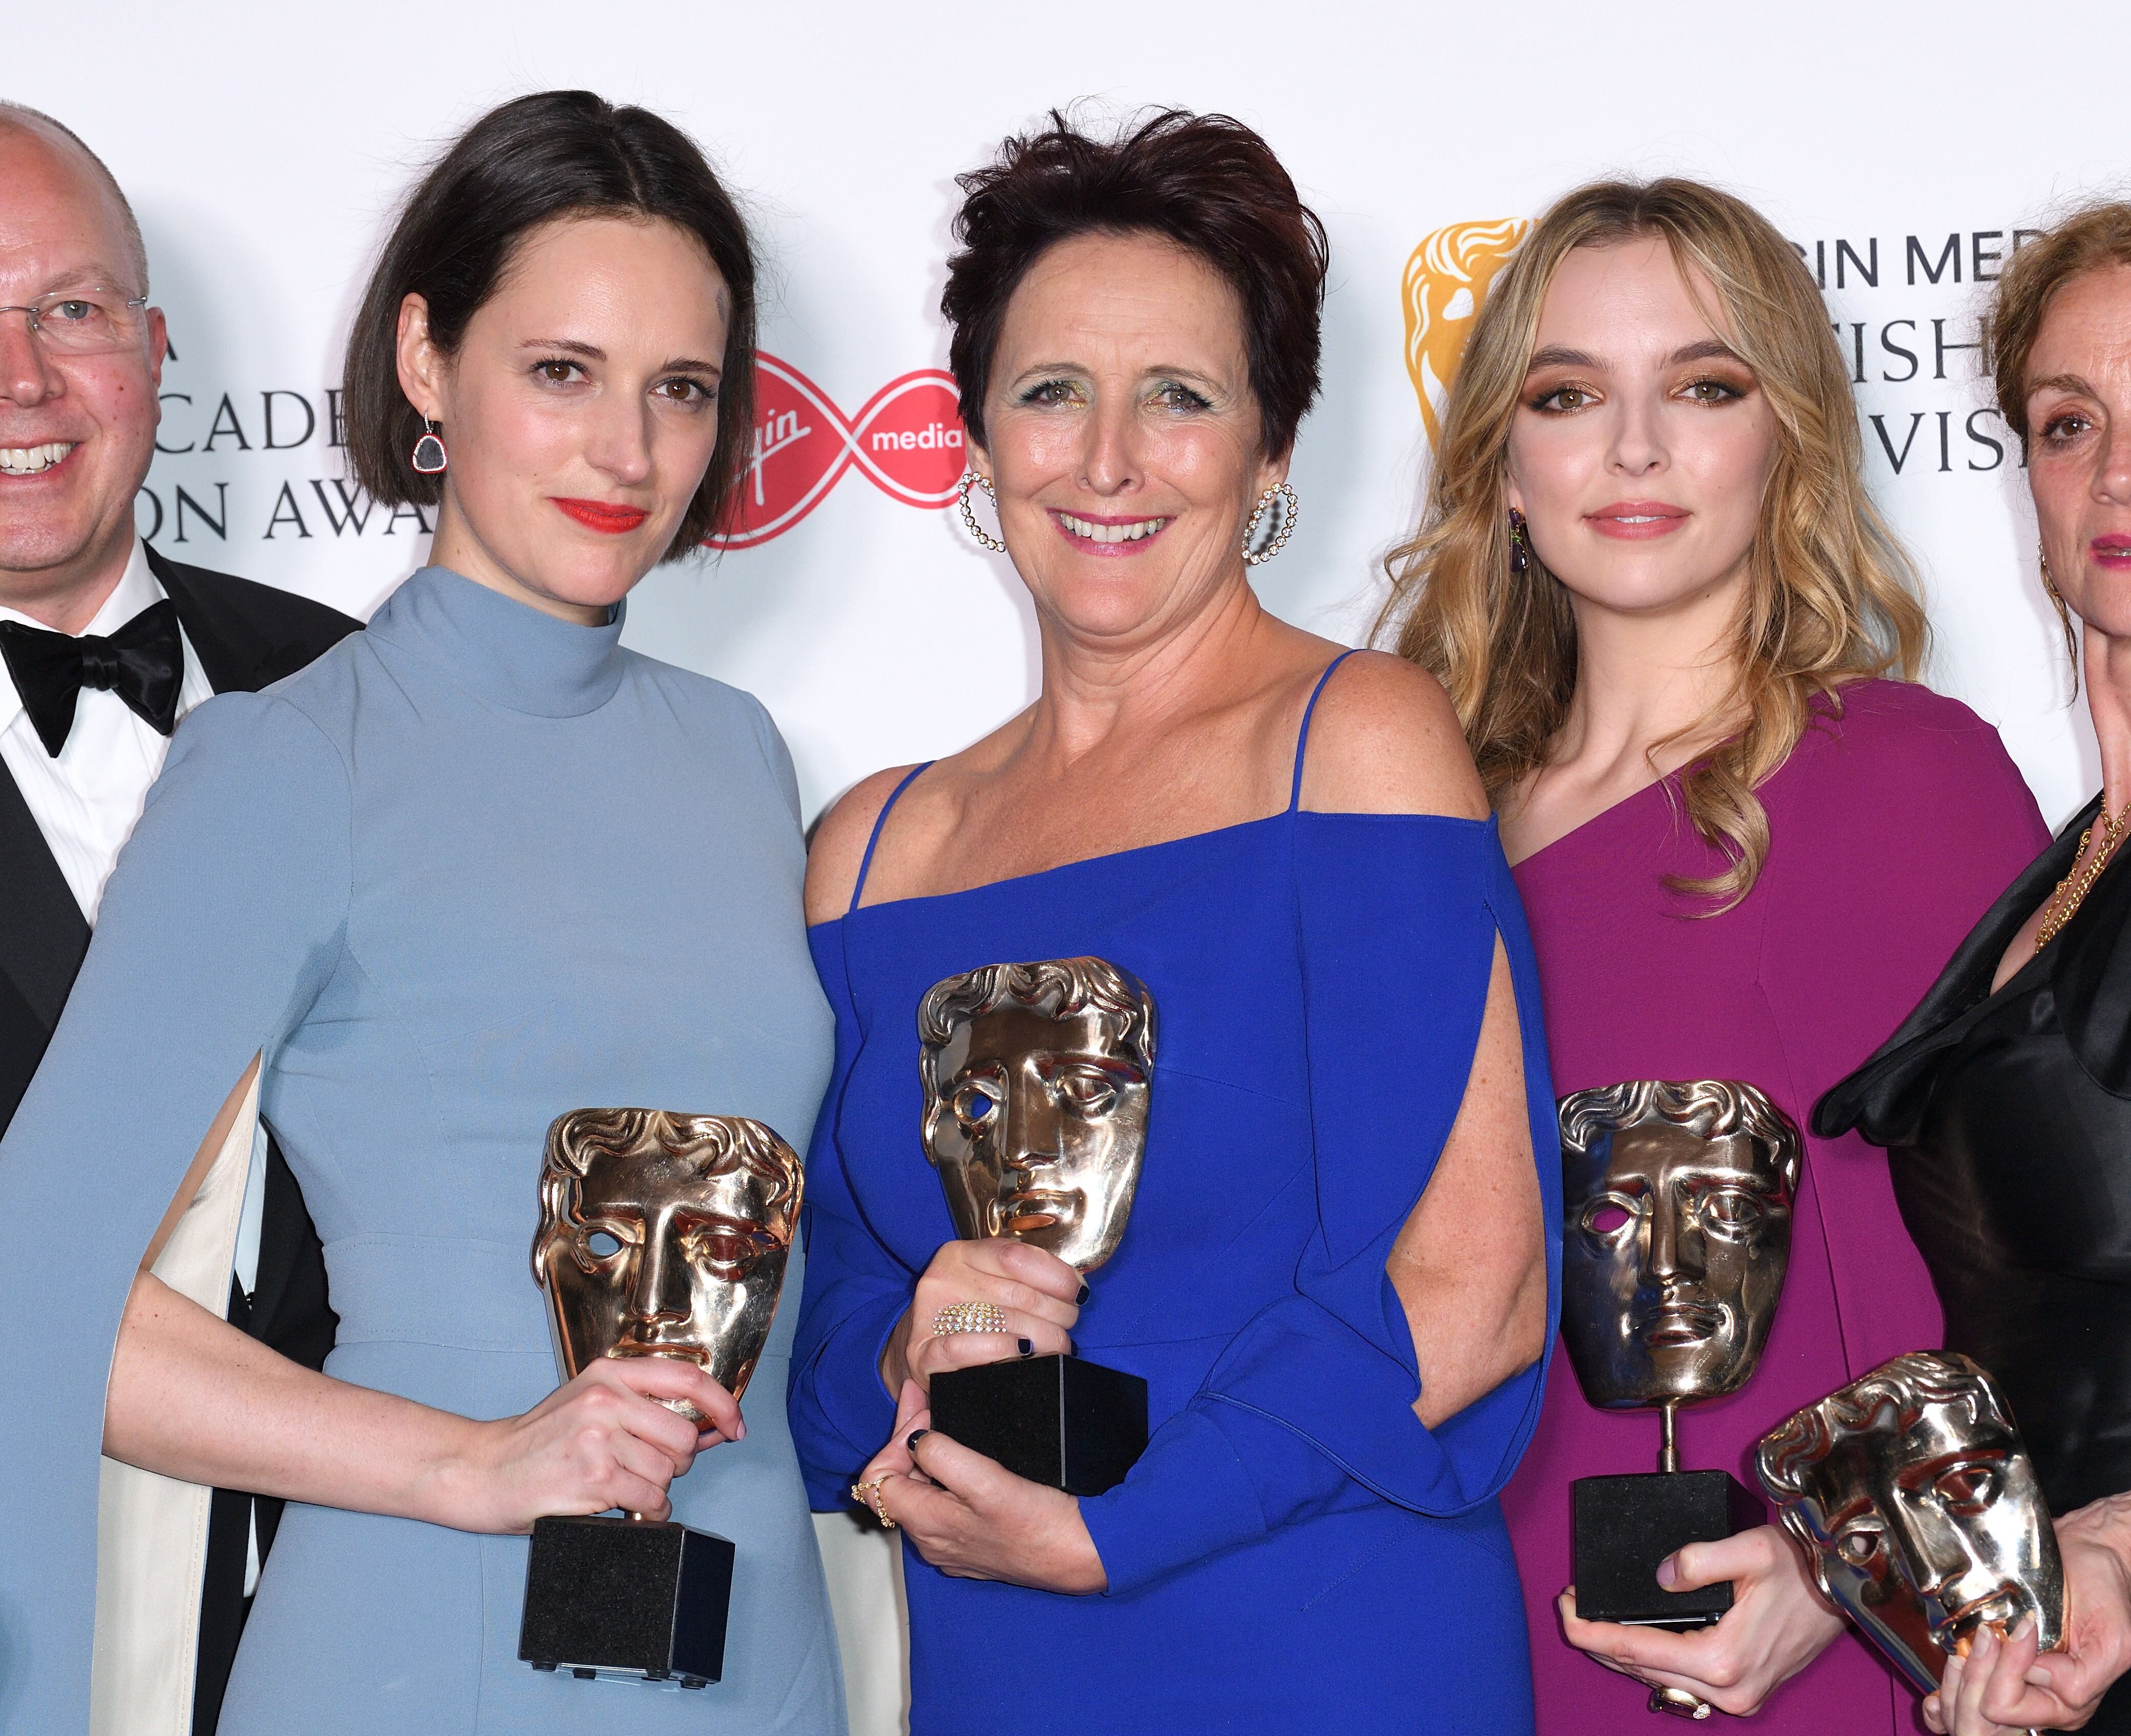 LONDON, ENGLAND - MAY 12: (L-R) Winner of the award for Drama Series for 'Killing Eve', Phoebe Waller-Bridge, winner of the Supporting Actress award for 'Killing Eve', Fiona Shaw and winner of the Best Leading Actress award for 'Killing Eve', Jodie Comer pose in the Press Room at the Virgin TV BAFTA Television Award at The Royal Festival Hall on May 12, 2019 in London, England. (Photo by Karwai Tang/WireImage)